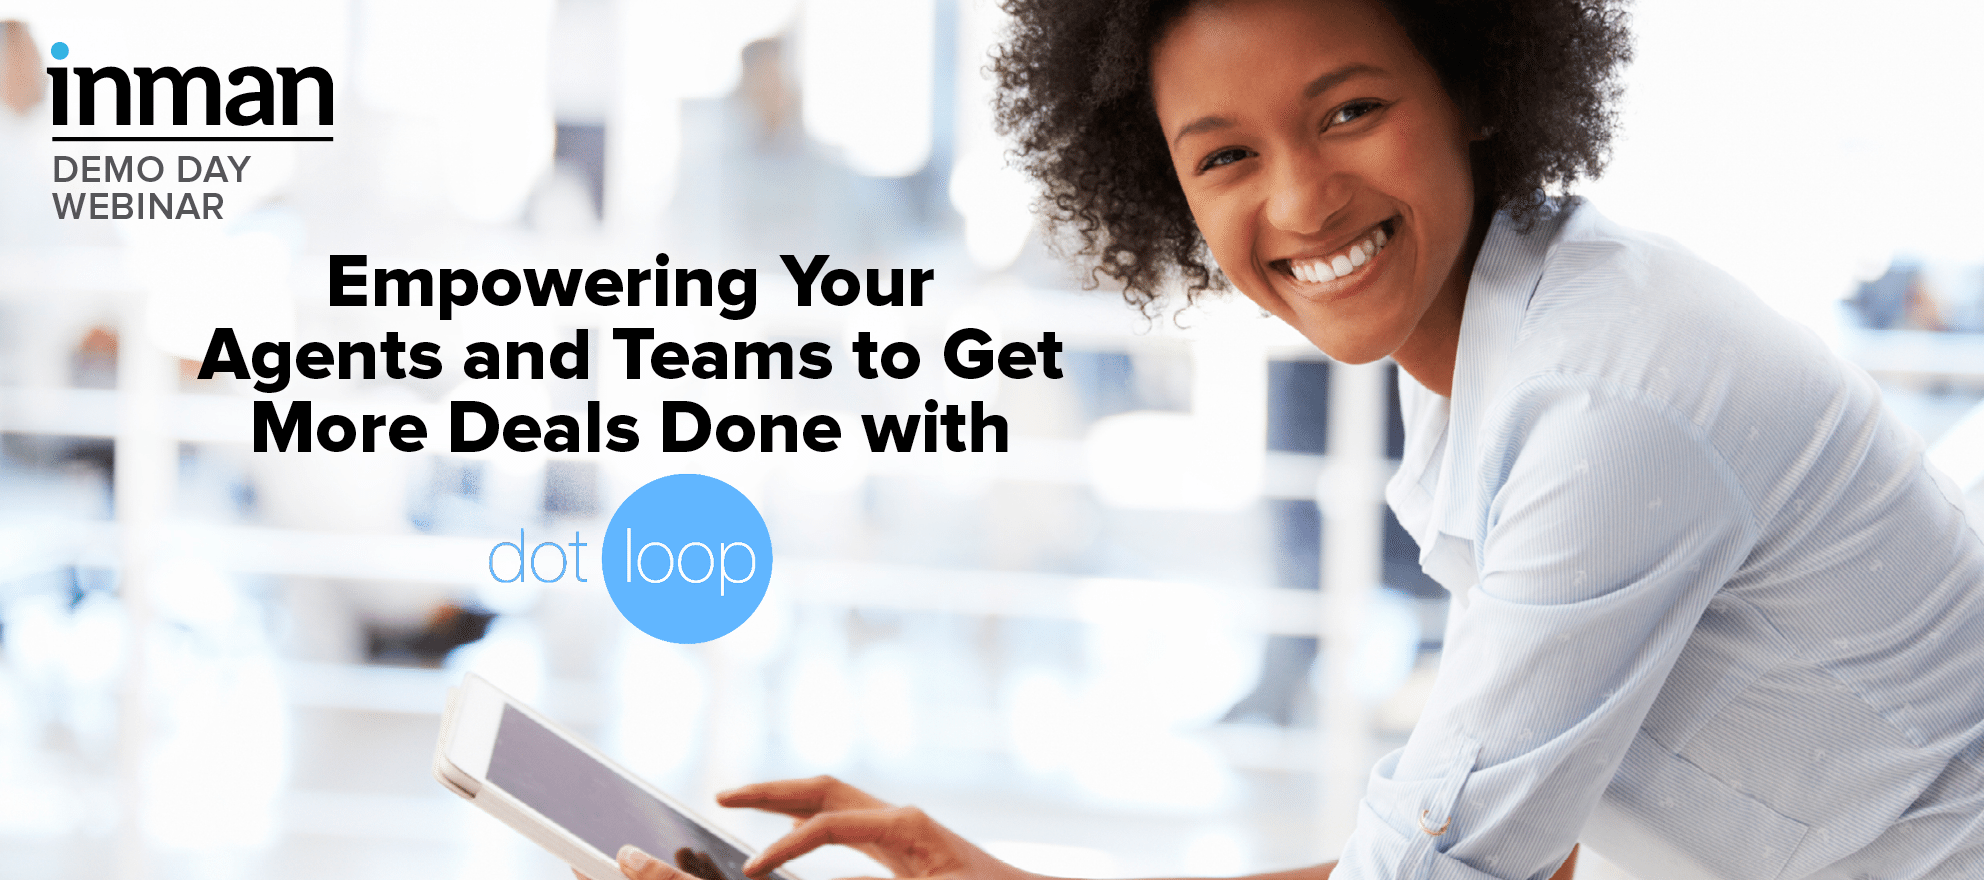 Empowering your agents and teams to get more deals done with dotloop